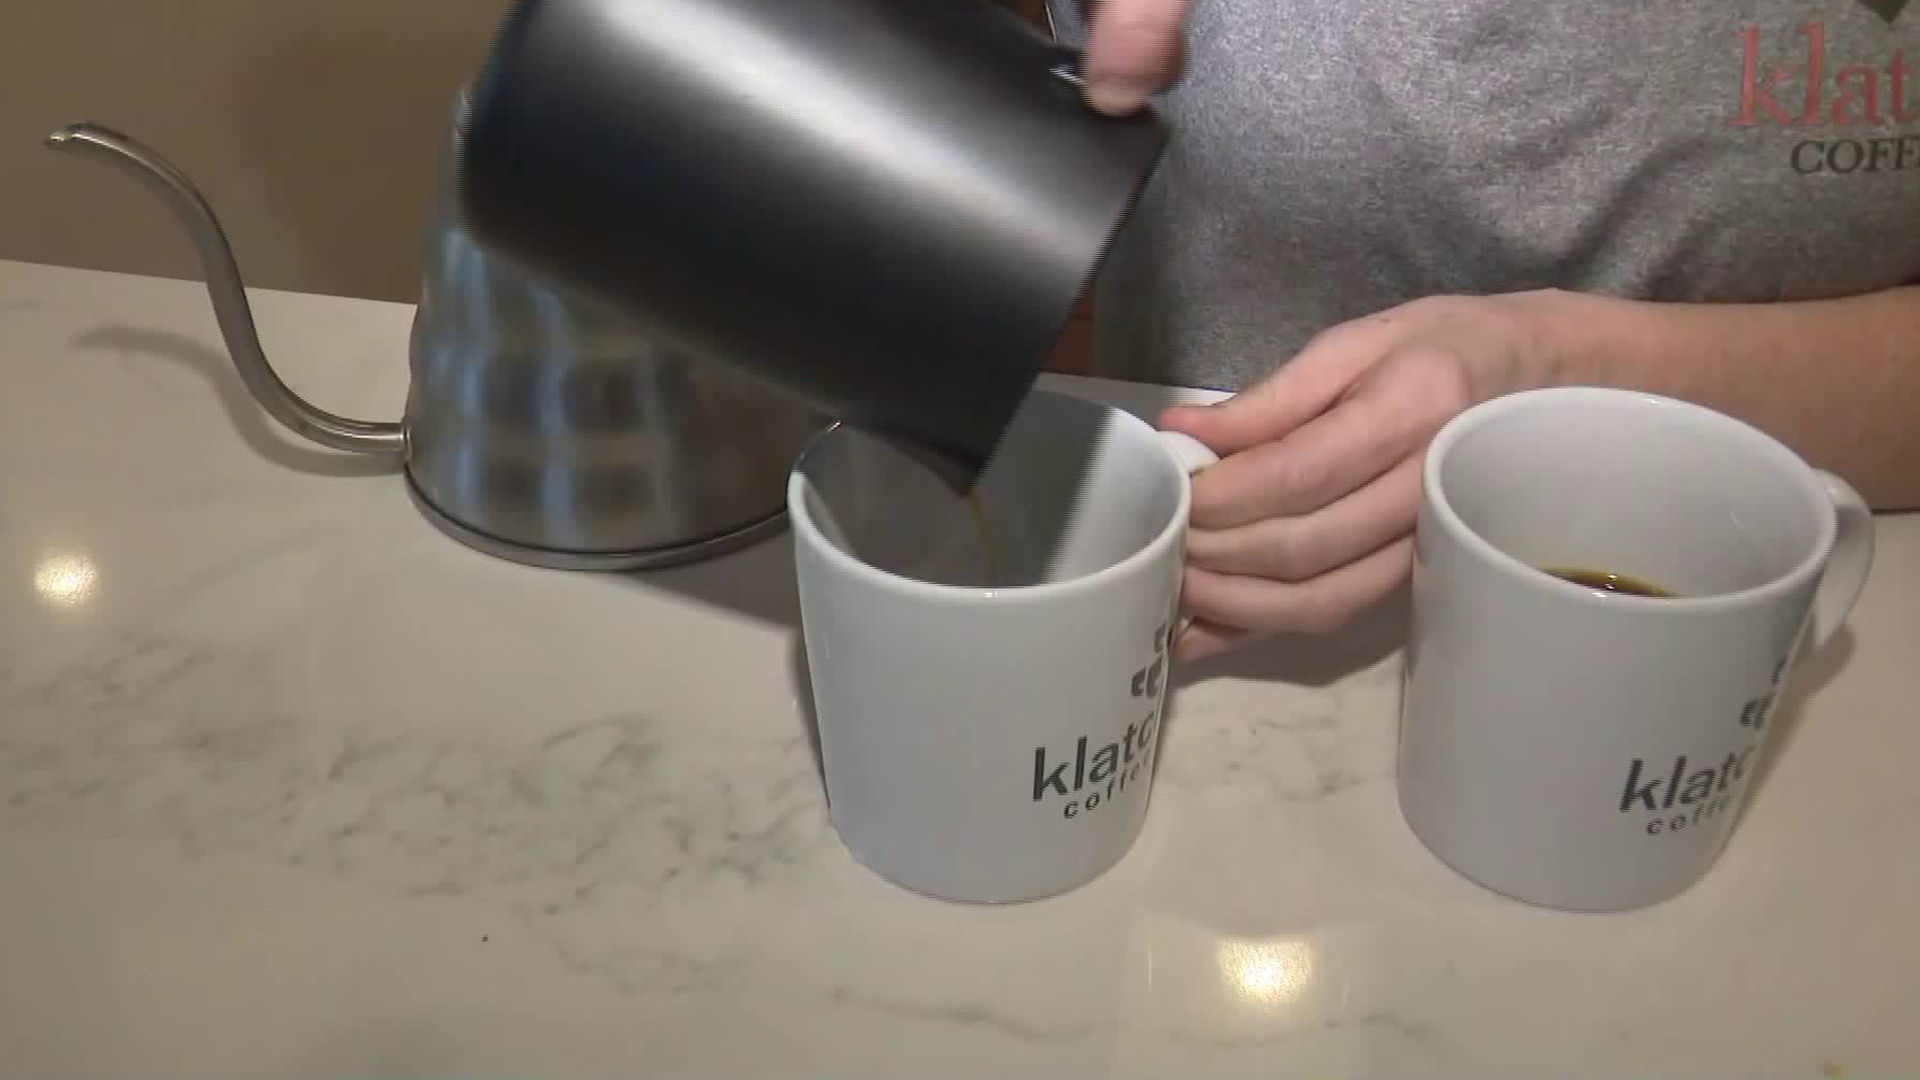 A barista pours the world's most expensive coffee into two cups at Klatch Coffee Roaster in San Dimas on May 13, 2019. (Credit: KTLA)